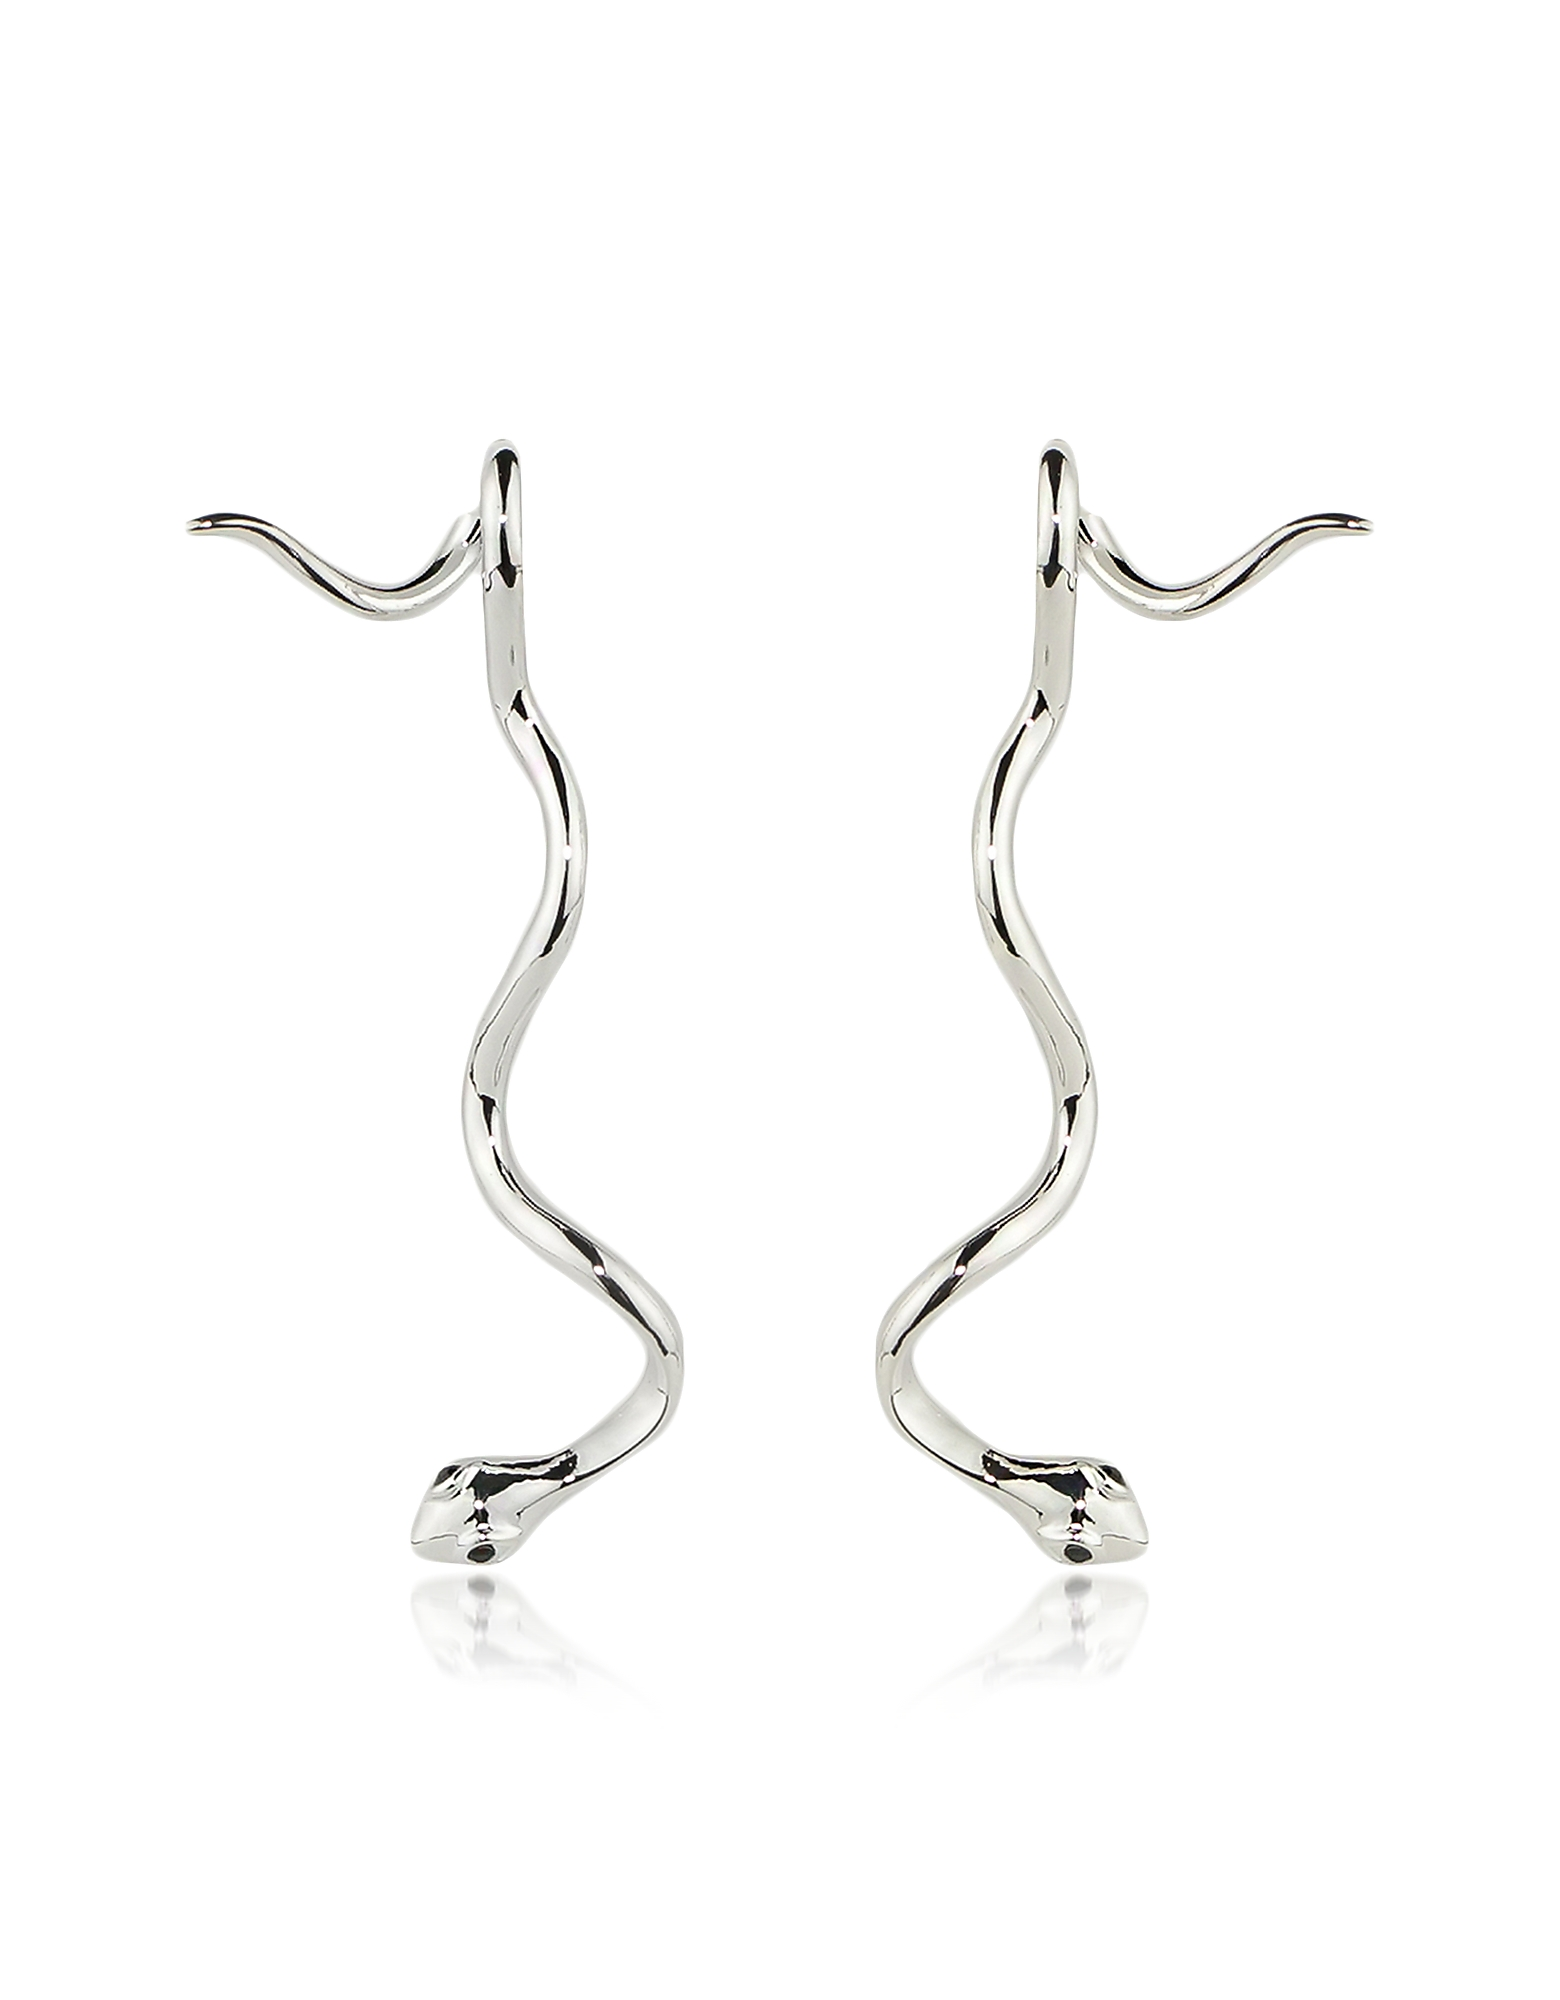 Federica Tosi Earrings, Long Snake Basic Earrings